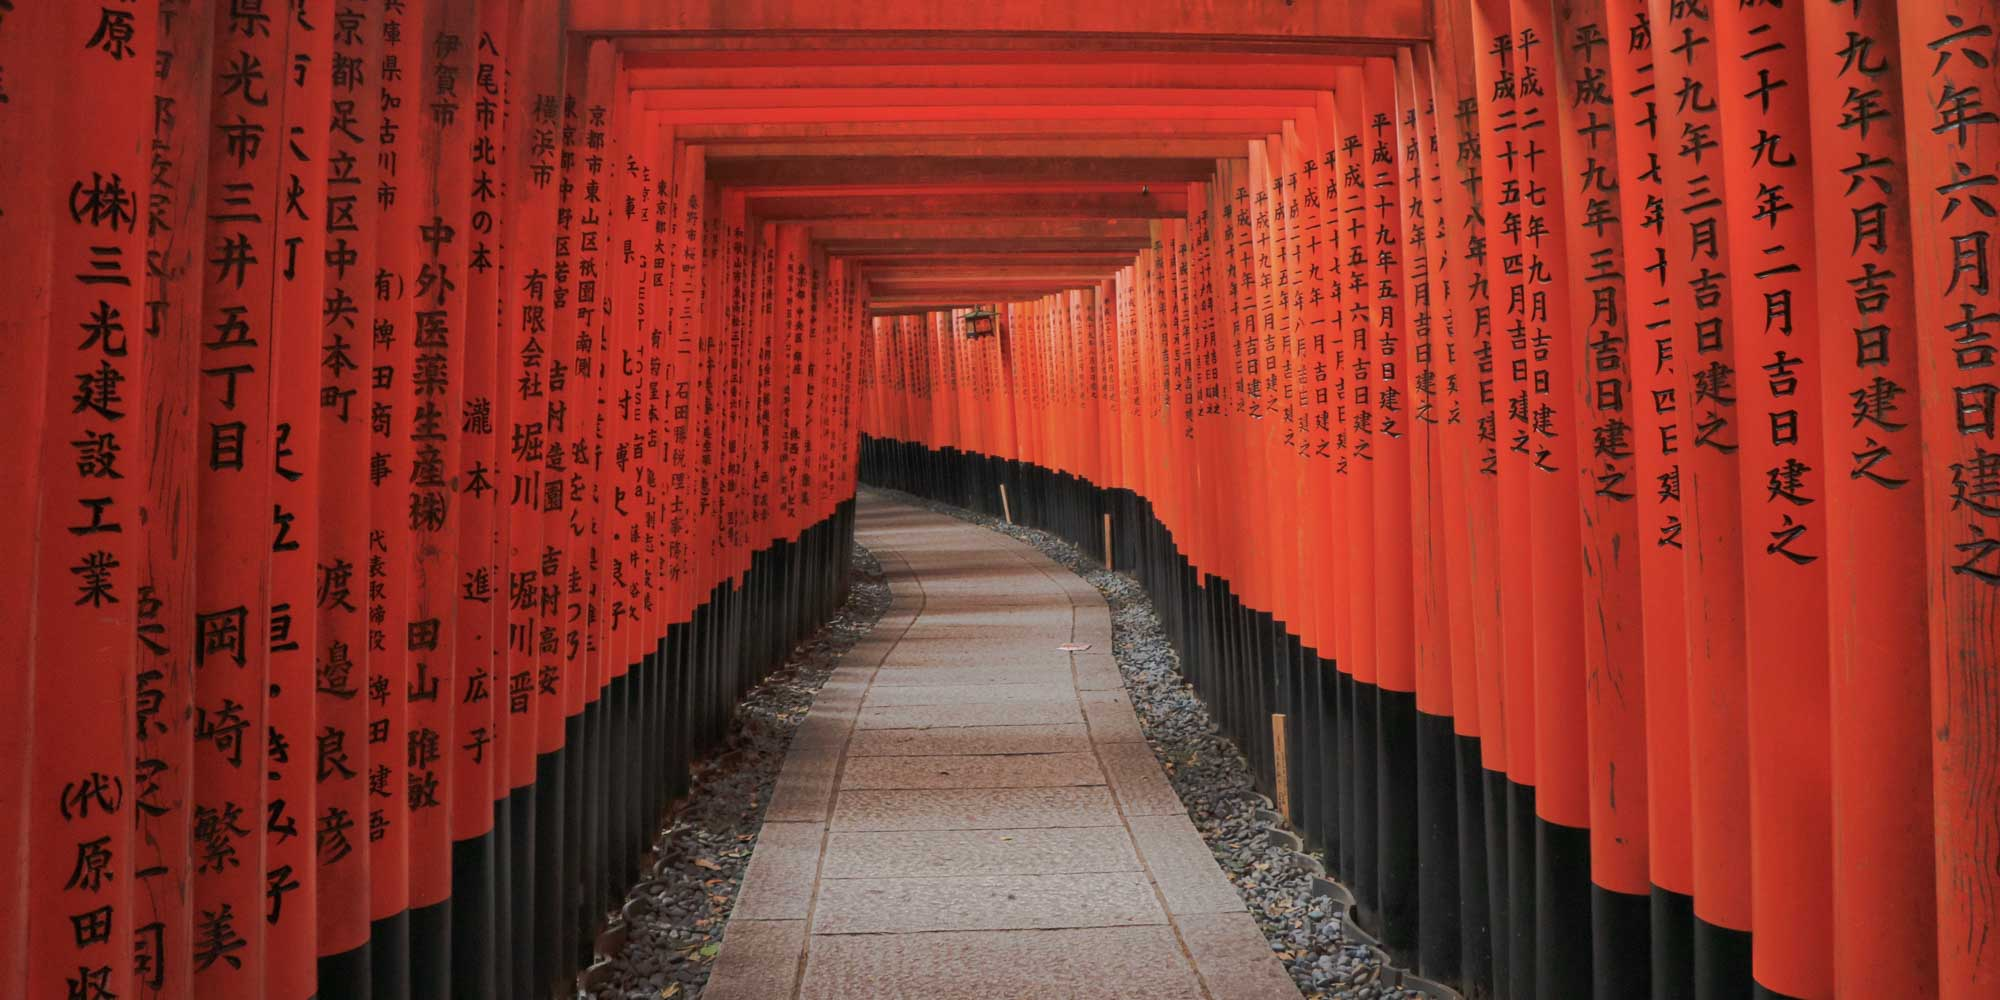 The Kyoto Conference on Arts, Media & Culture